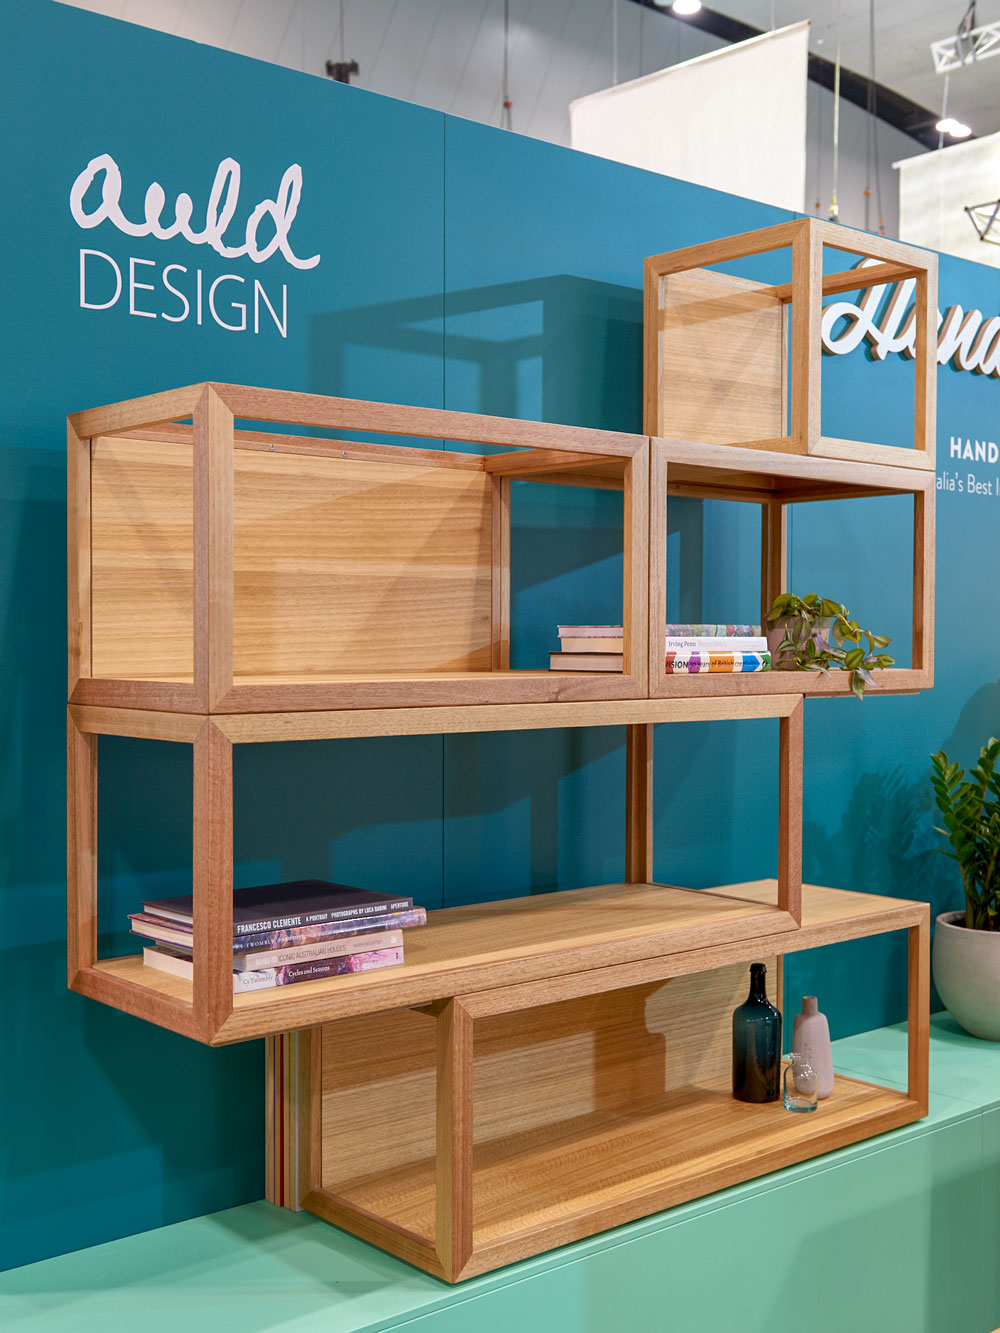 Cubis shelf system at Denfair - One of many possible configurations